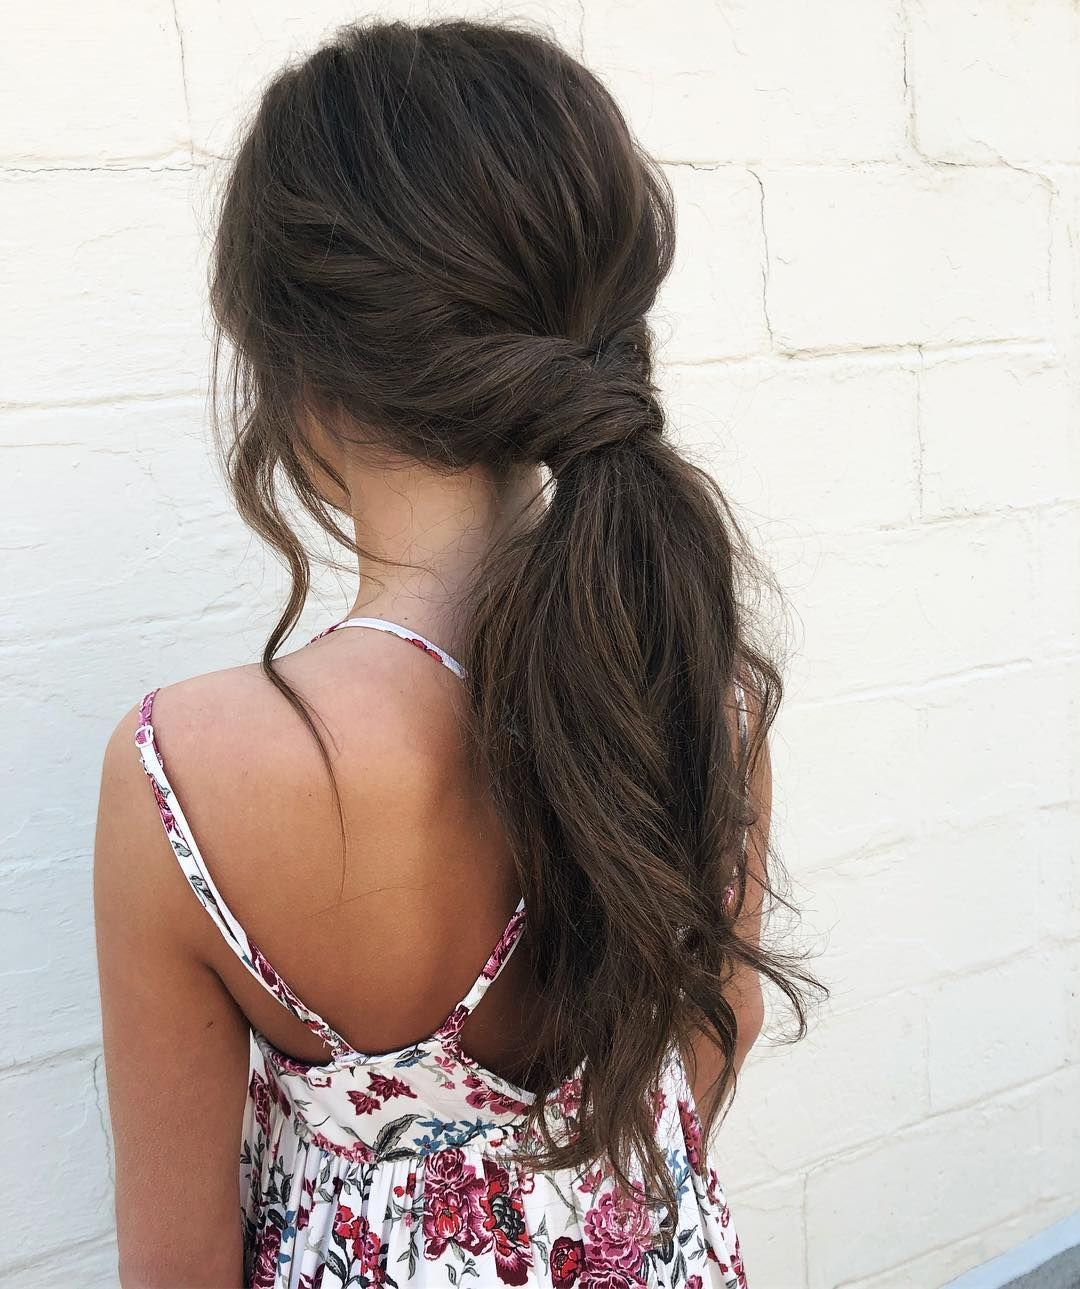 "ponytail hairstyle <a class=""pintag"" href=""/explore/weddinghair/"" title=""#weddinghair explore Pinterest"">#weddinghair</a> <a class=""pintag"" href=""/explore/hairstyle/"" title=""#hairstyle explore Pinterest"">#hairstyle</a> <a class=""pintag"" href=""/explore/halfup/"" title=""#halfup explore Pinterest"">#halfup</a> <a class=""pintag"" href=""/explore/wedding/"" title=""#wedding explore Pinterest"">#wedding</a> <a class=""pintag"" href=""/explore/hairdos/"" title=""#hairdos explore Pinterest"">#hairdos</a> <a class=""pintag"" href=""/explore/bridehair/"" title=""#bridehair explore Pinterest"">#bridehair</a> <a class=""pintag"" href=""/explore/OlderWomensHairstylesLong/"" title=""#OlderWomensHairstylesLong explore Pinterest"">#OlderWomensHairstylesLong</a><p><a href=""http://www.homeinteriordesign.org/2018/02/short-guide-to-interior-decoration.html"">Short guide to interior decoration</a></p>"